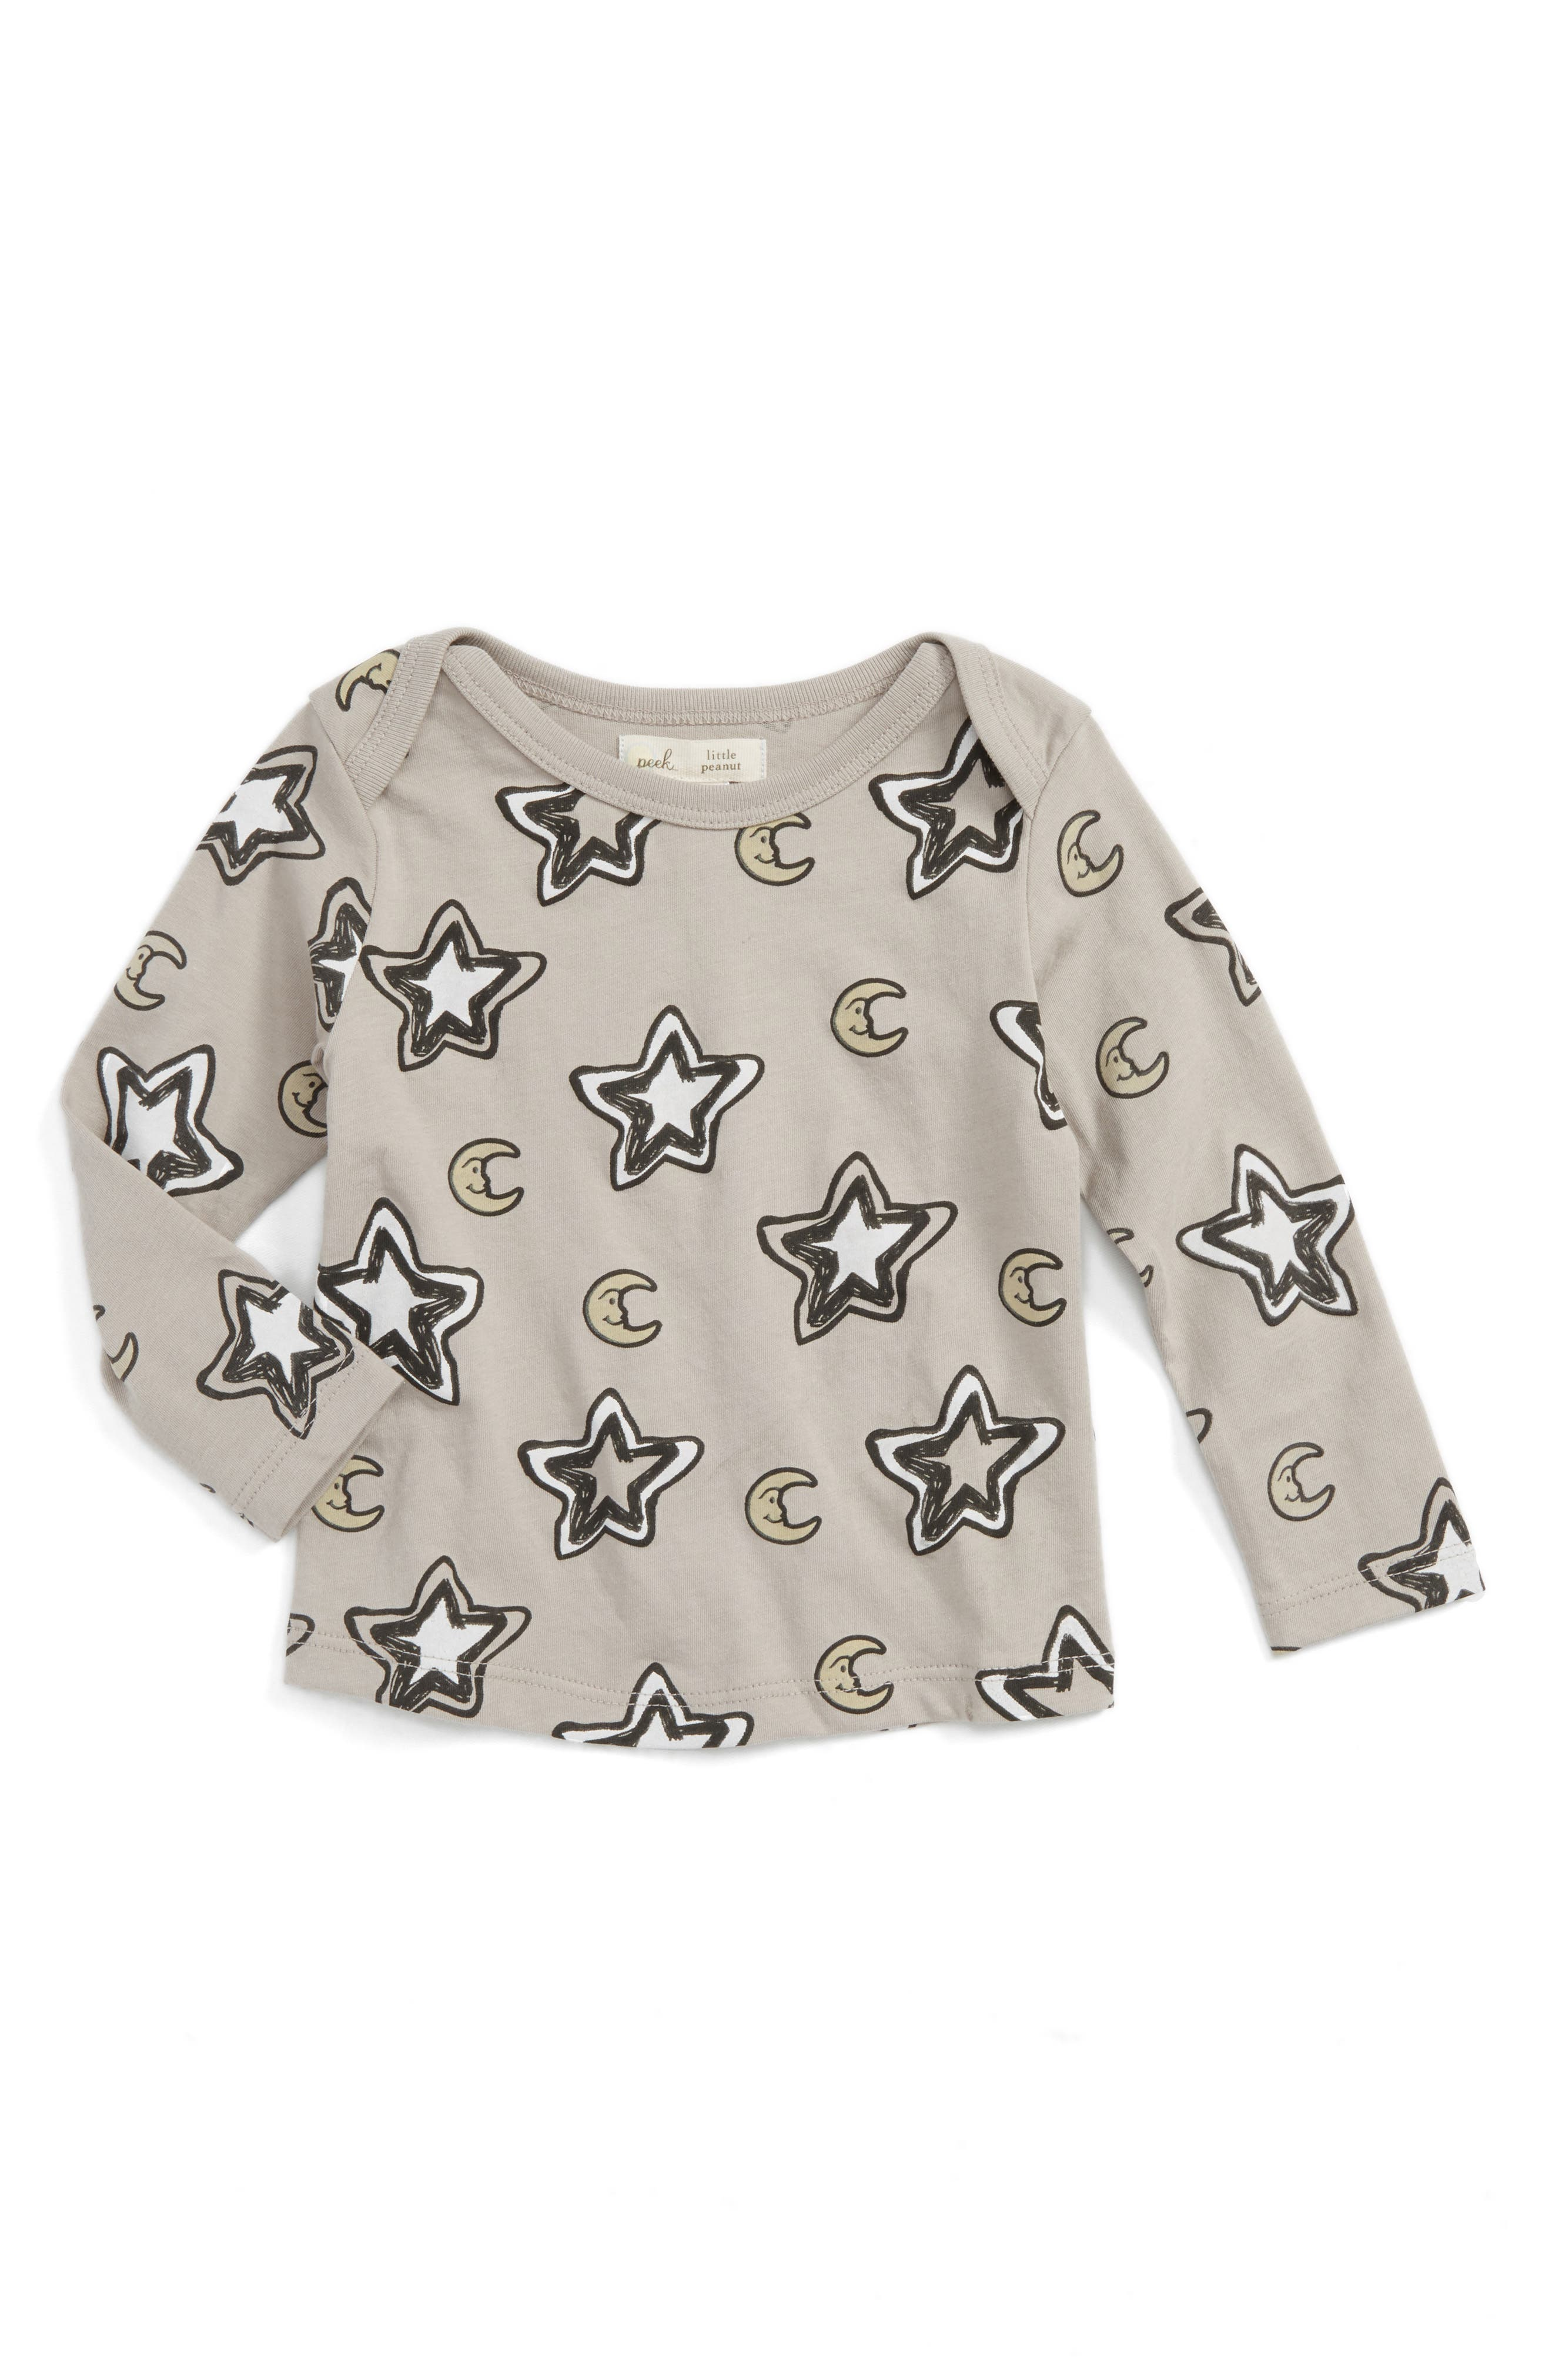 Alternate Image 1 Selected - Peek Star & Moon Print T-Shirt (Baby Boys)